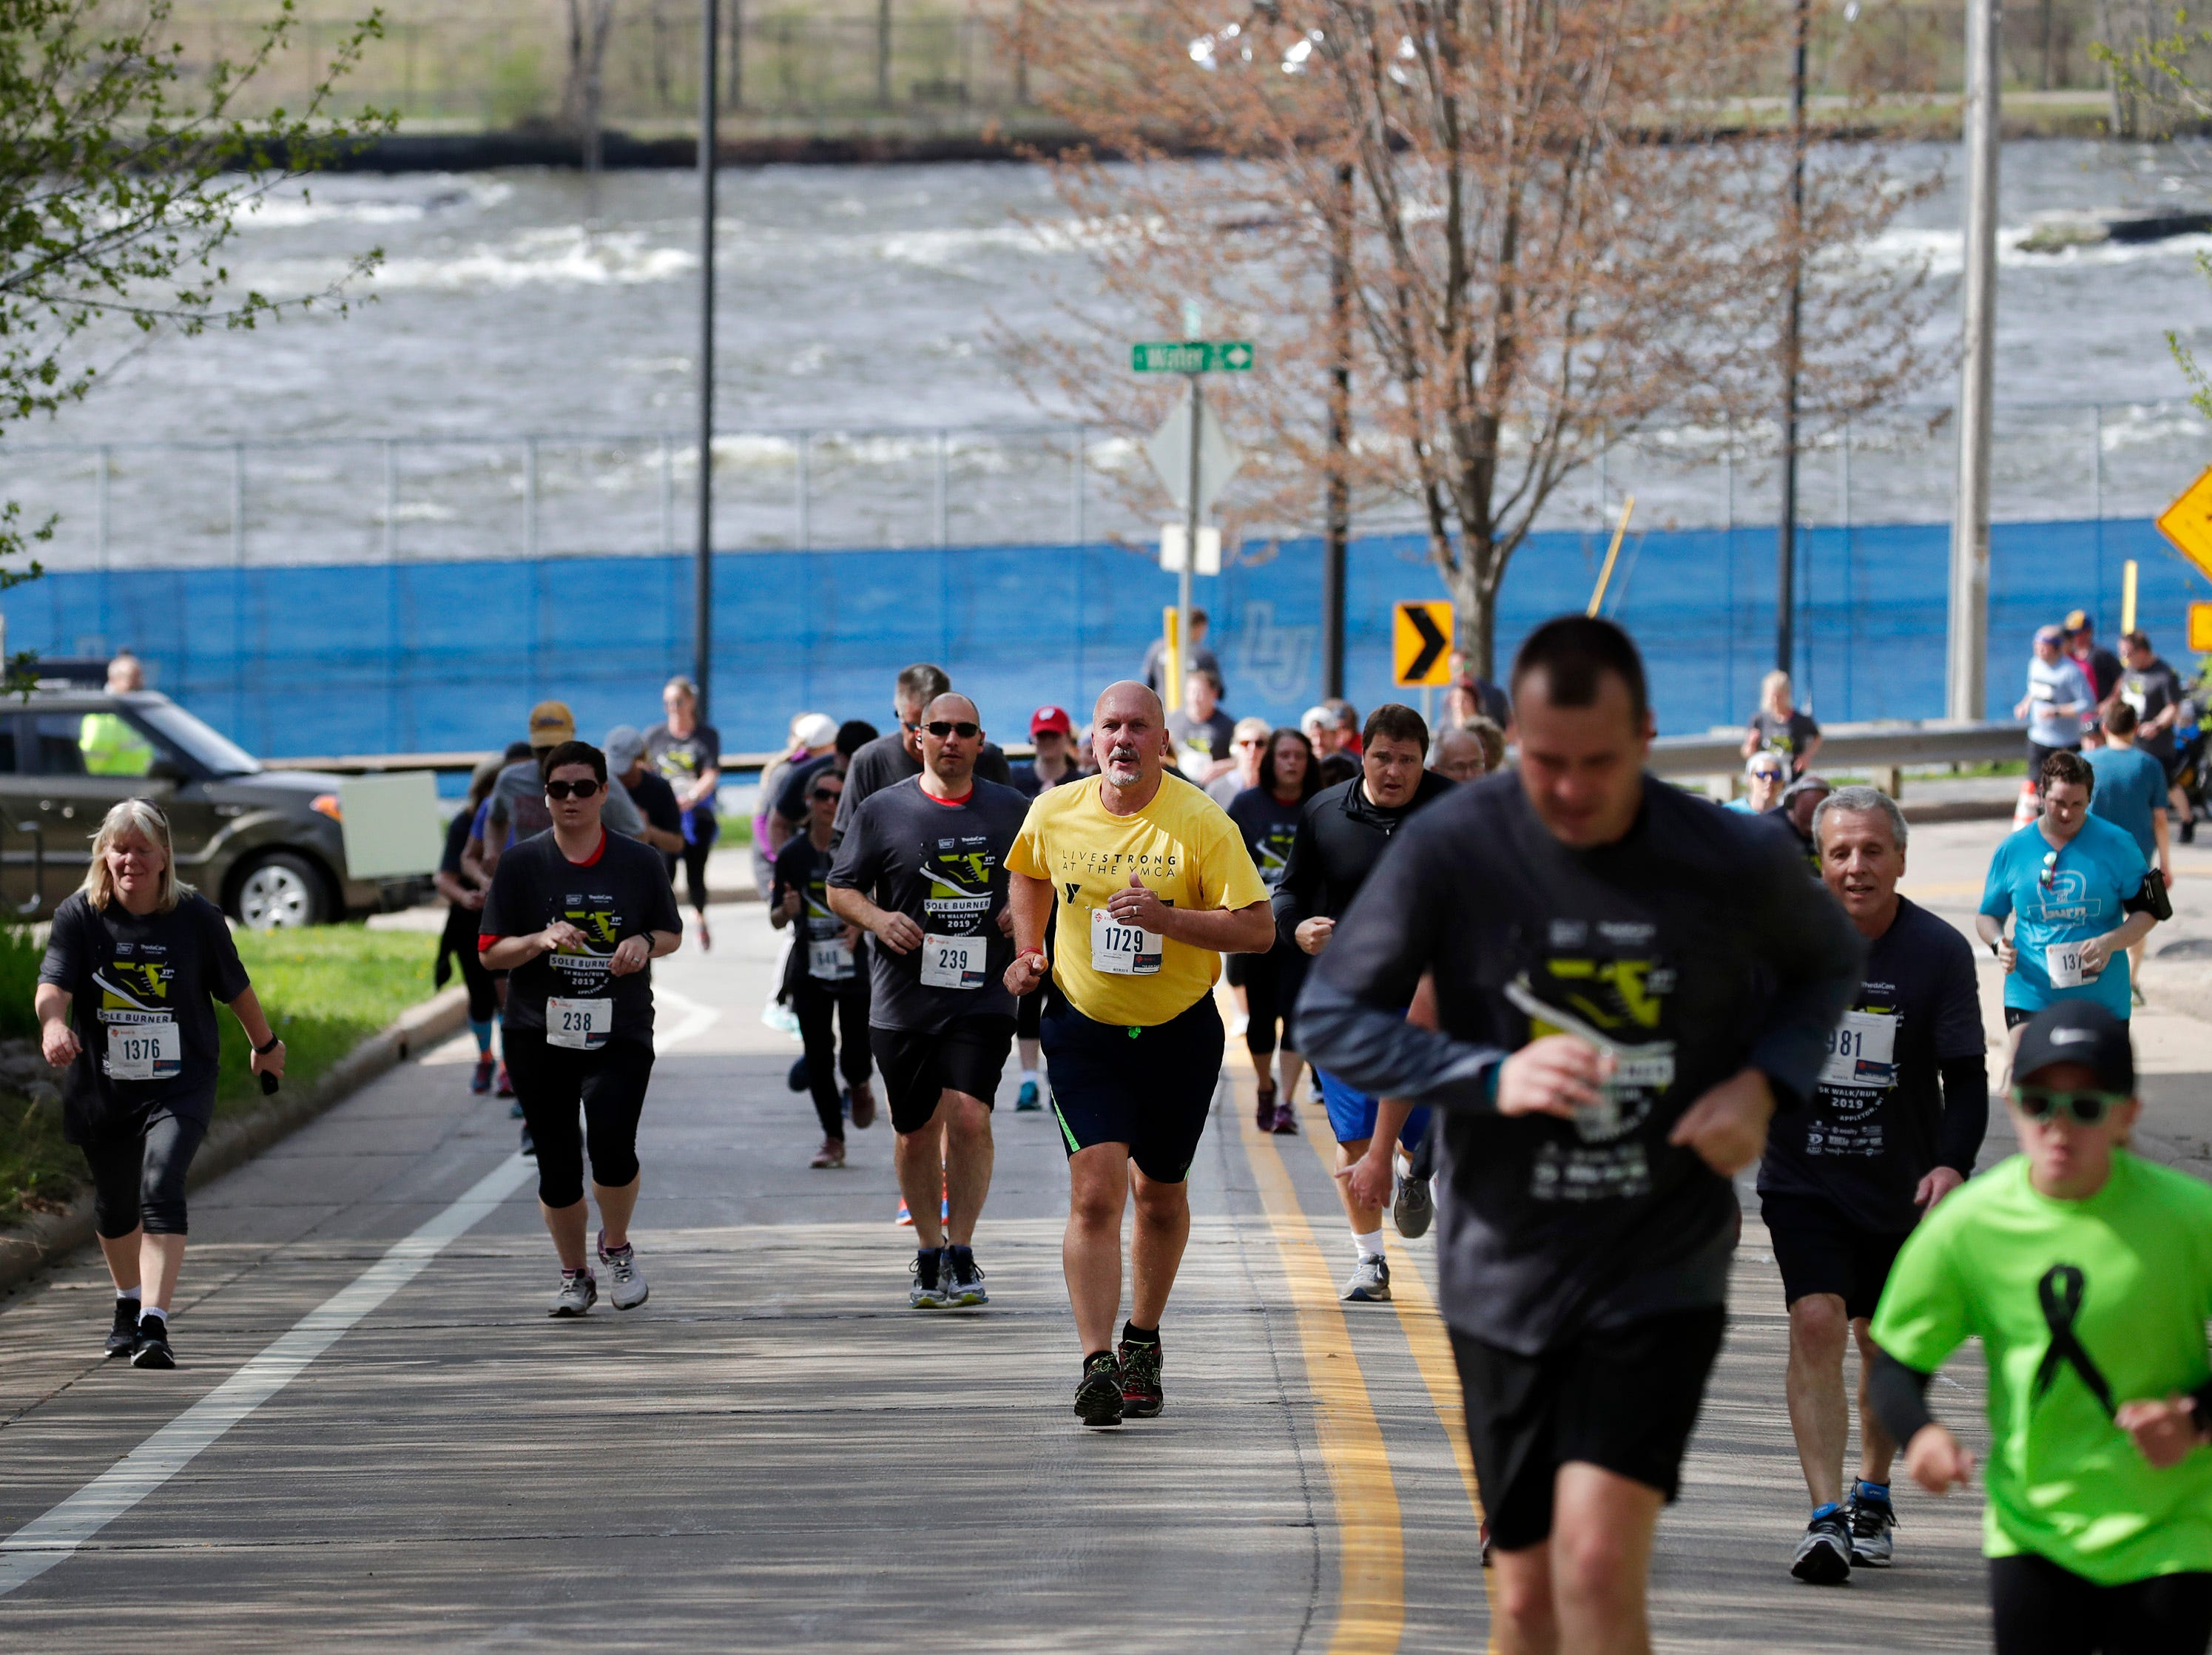 """Participants in the Sole Burner 5K Walk-Run make their way up Drew Street, or """"The Hill of Hope,"""" near the finish of the race Saturday, May 11, 2019, in Appleton, Wis. Danny Damiani/USA TODAY NETWORK-Wisconsin"""